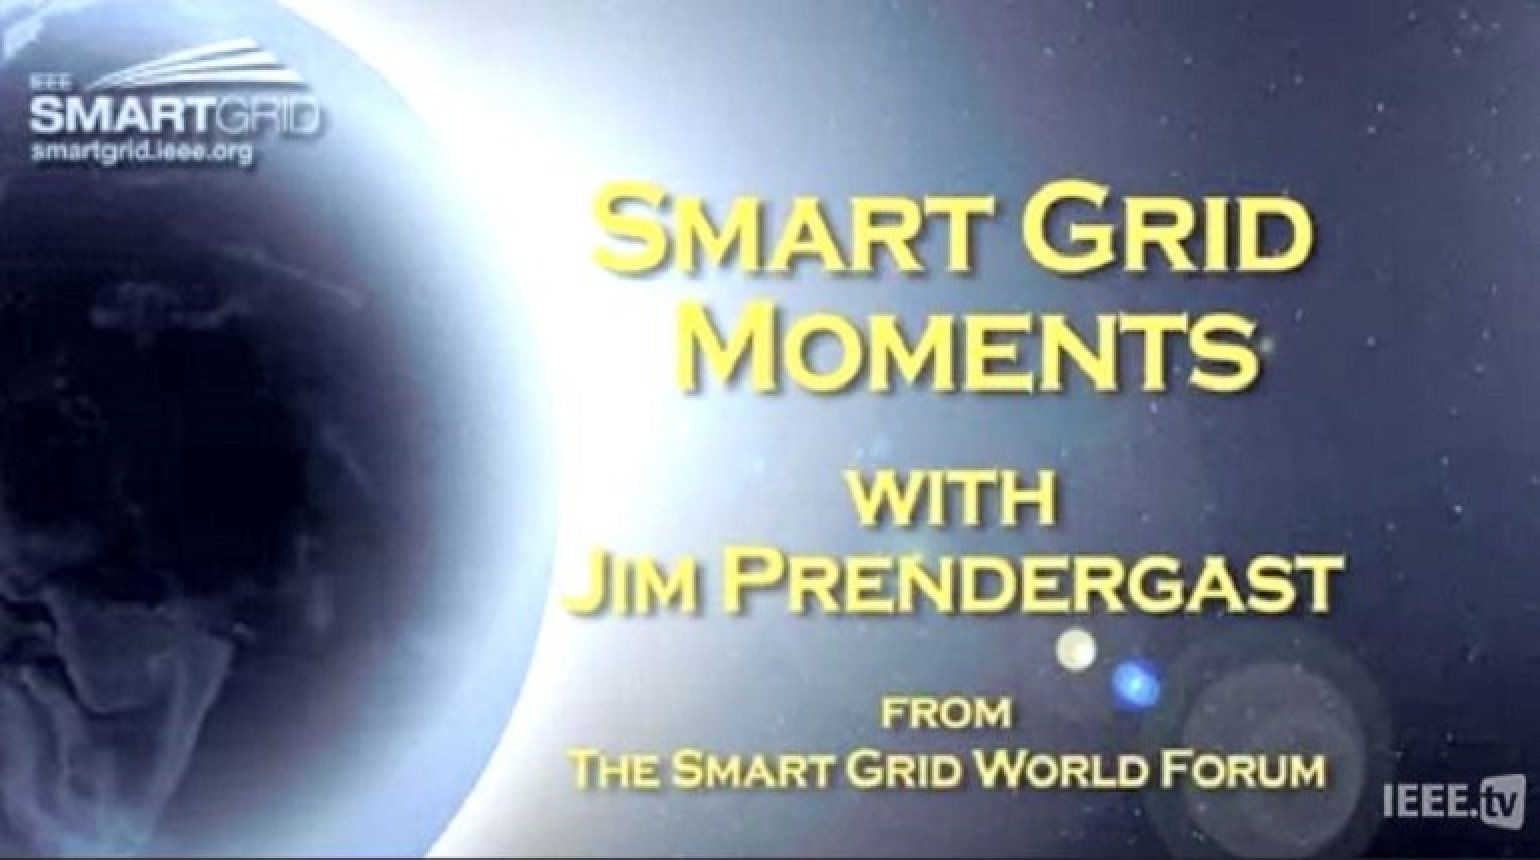 Global Standards and the Smart Grid: Jim Prendergast